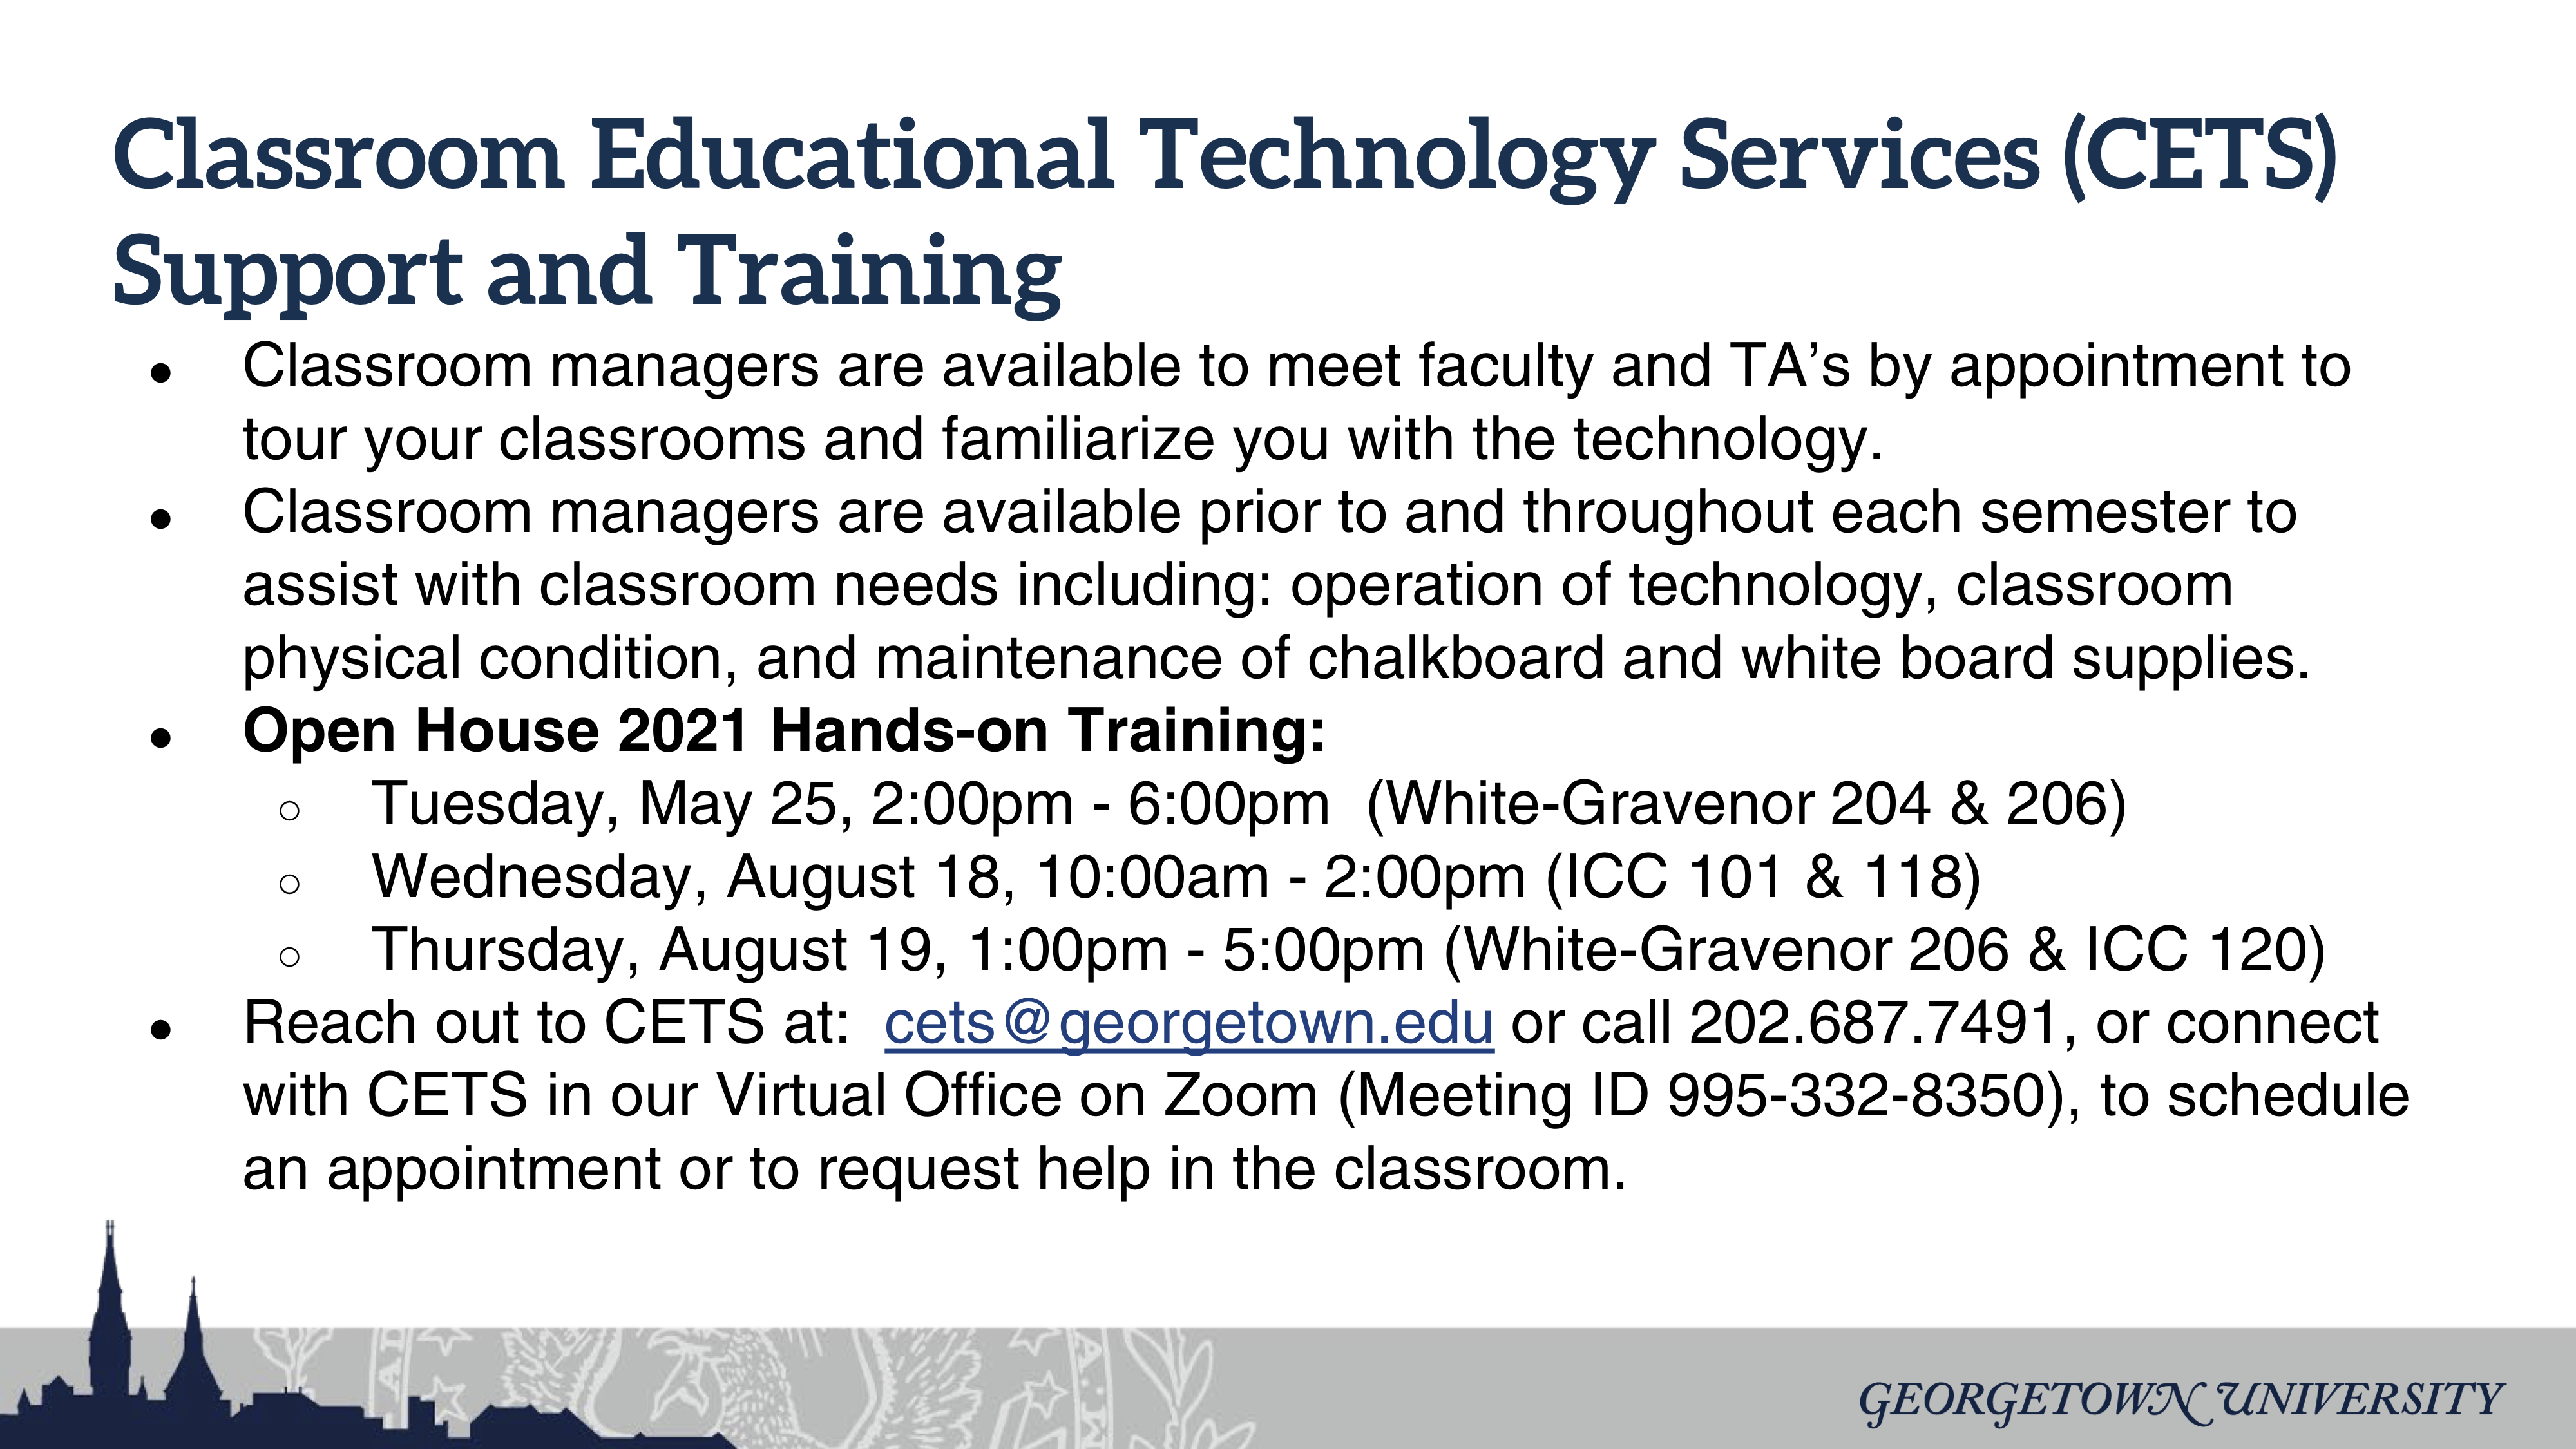 Classroom Educational Technology Services (CETS) Support and Training